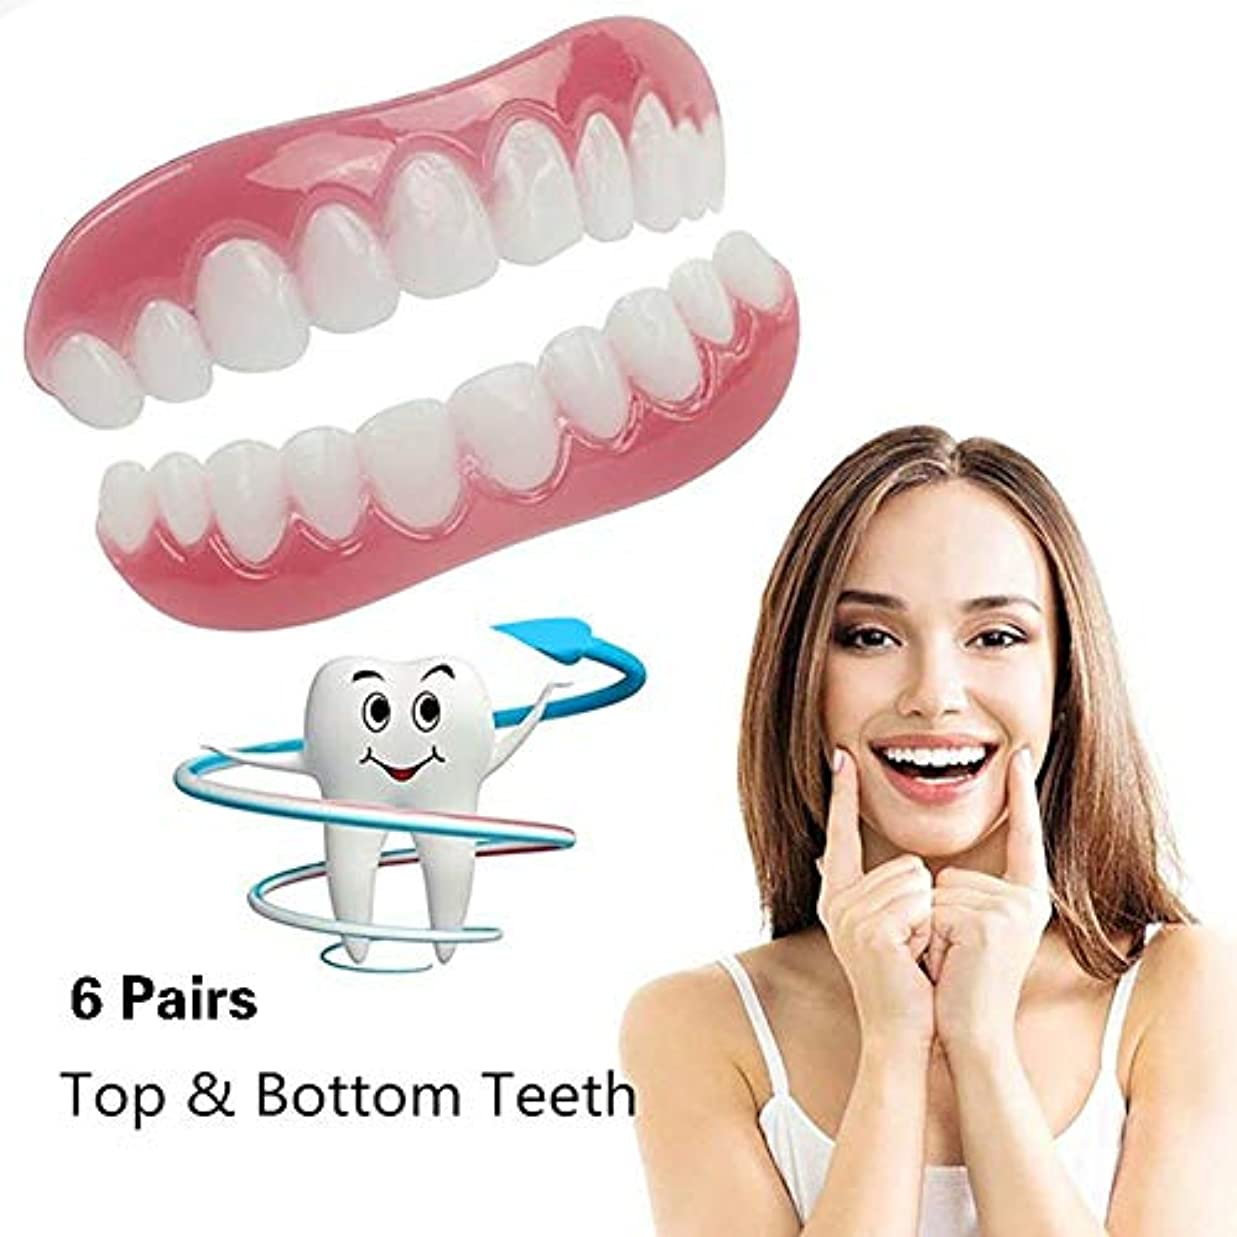 6 Pairs Whitening Snap Perfect Smile Teeth Fake Tooth Cover On Smile Instant Teeth Cosmetic Denture